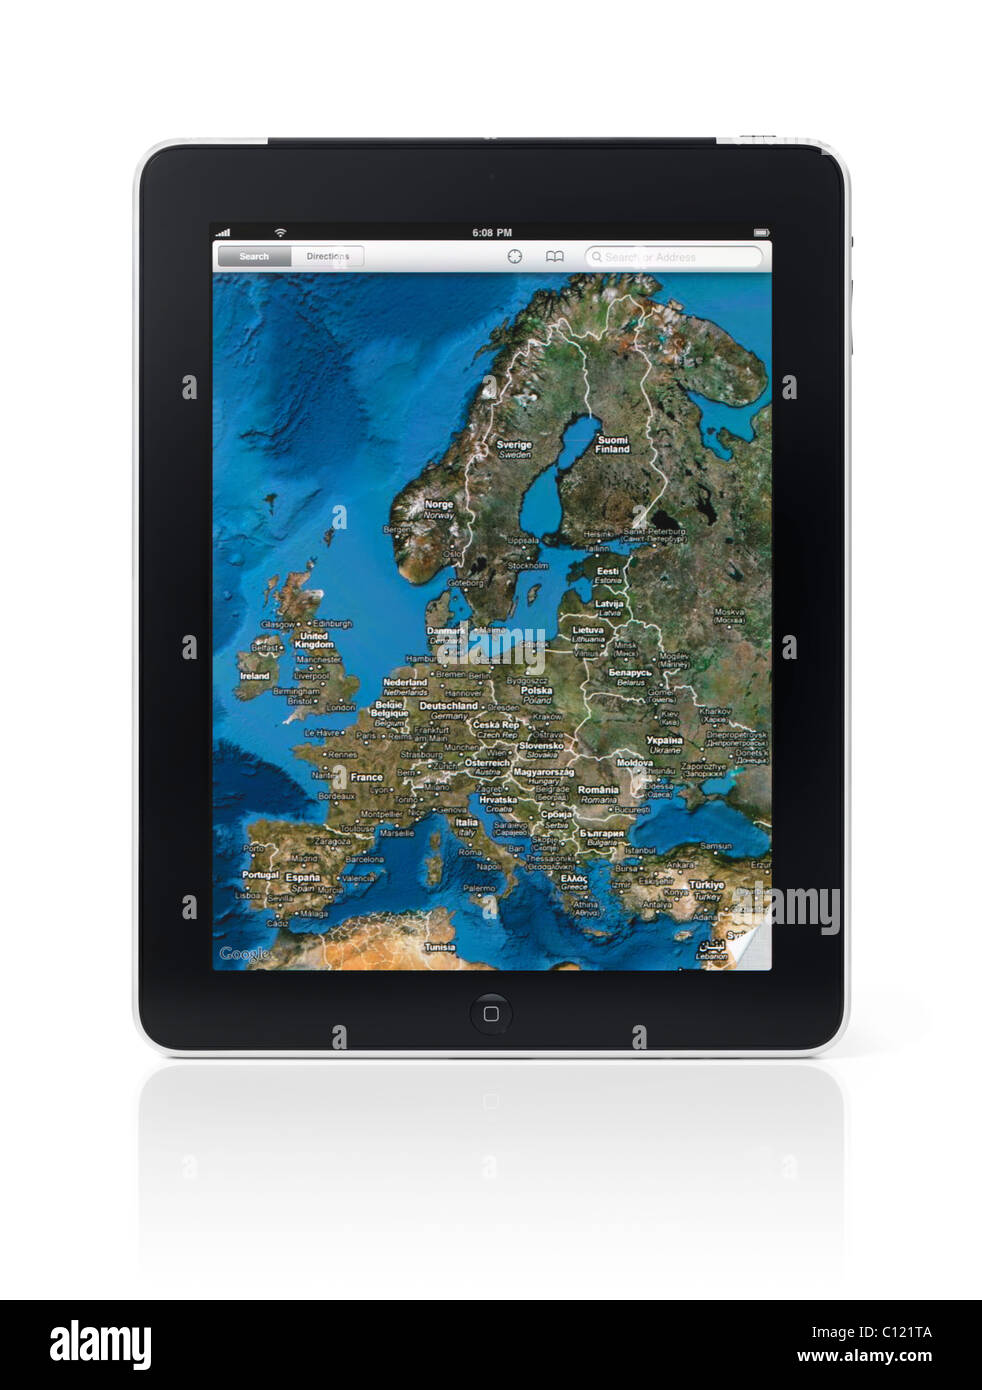 Apple iPad 3G tablet with Google maps displaying the map of ... on click map, greater china map, google map, android map, java map, venice venice louisianna bay map, microsoft map, 3m map, at&t map, mobile map,